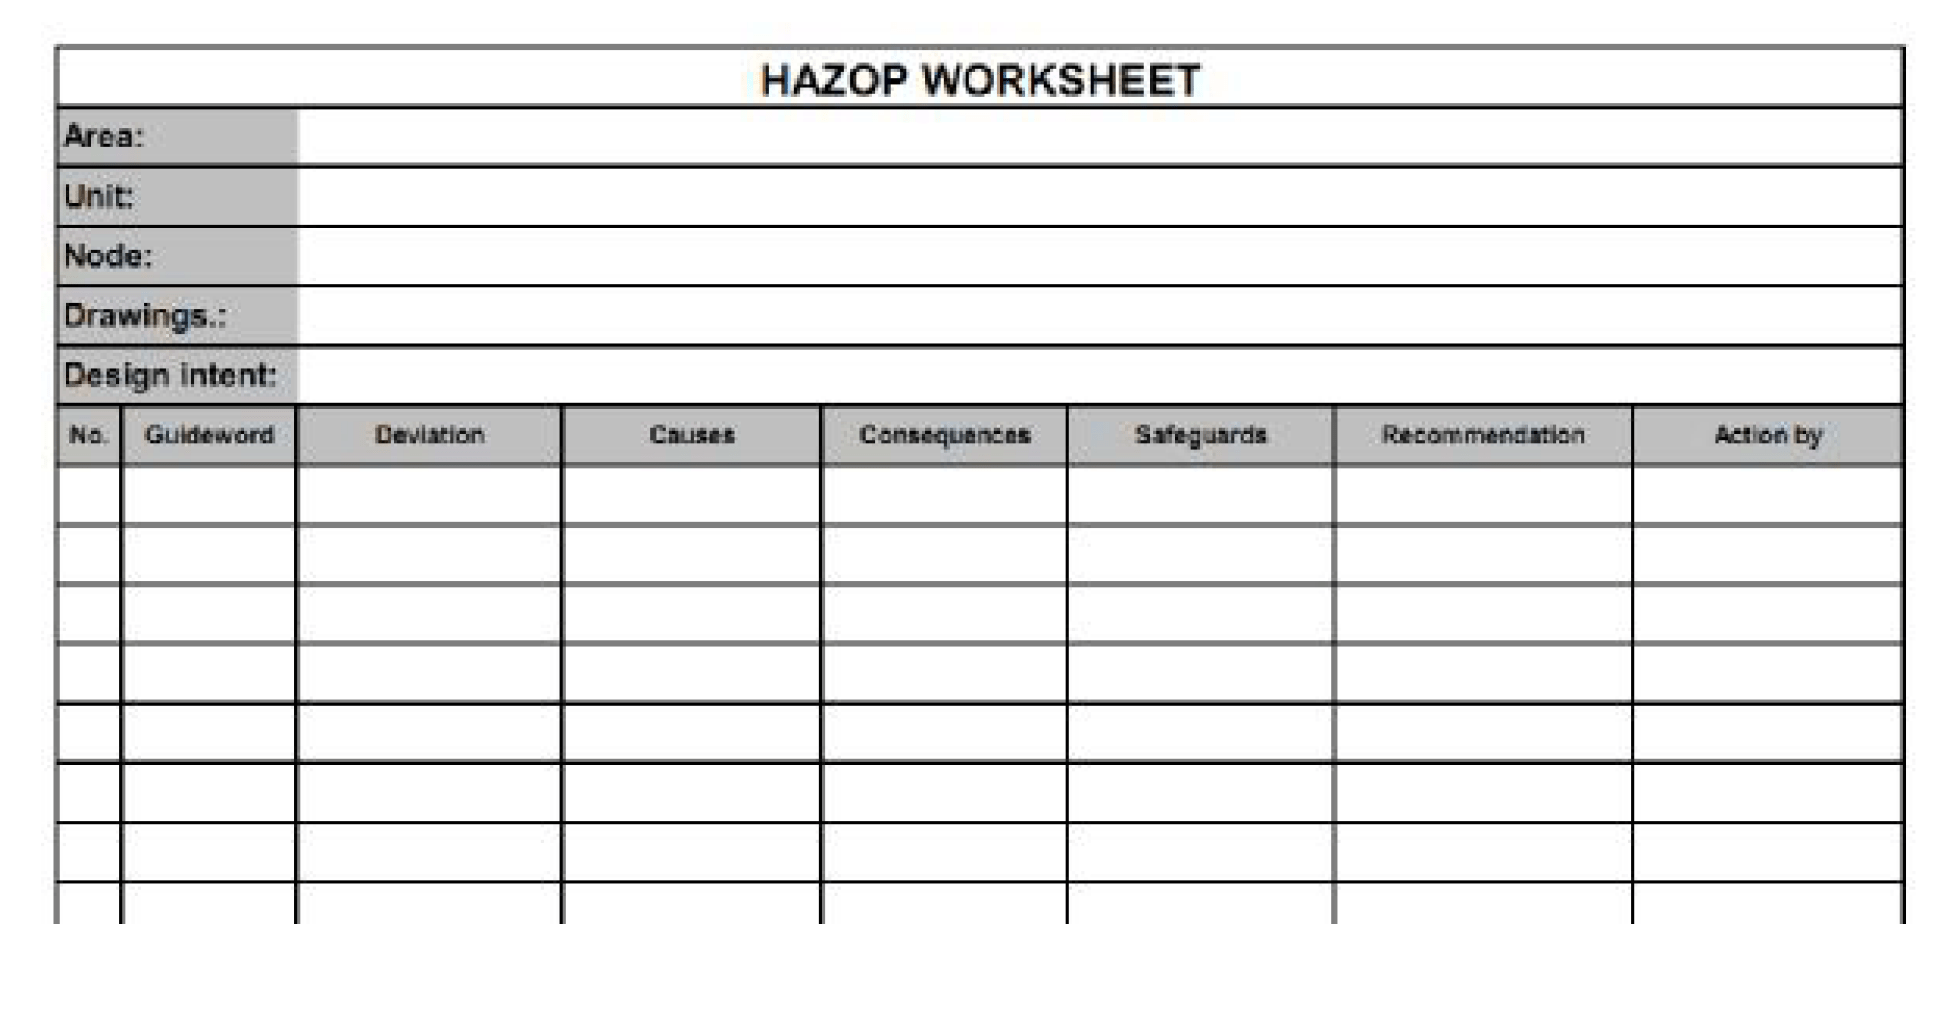 Vba To Delete Worksheet Without Warning